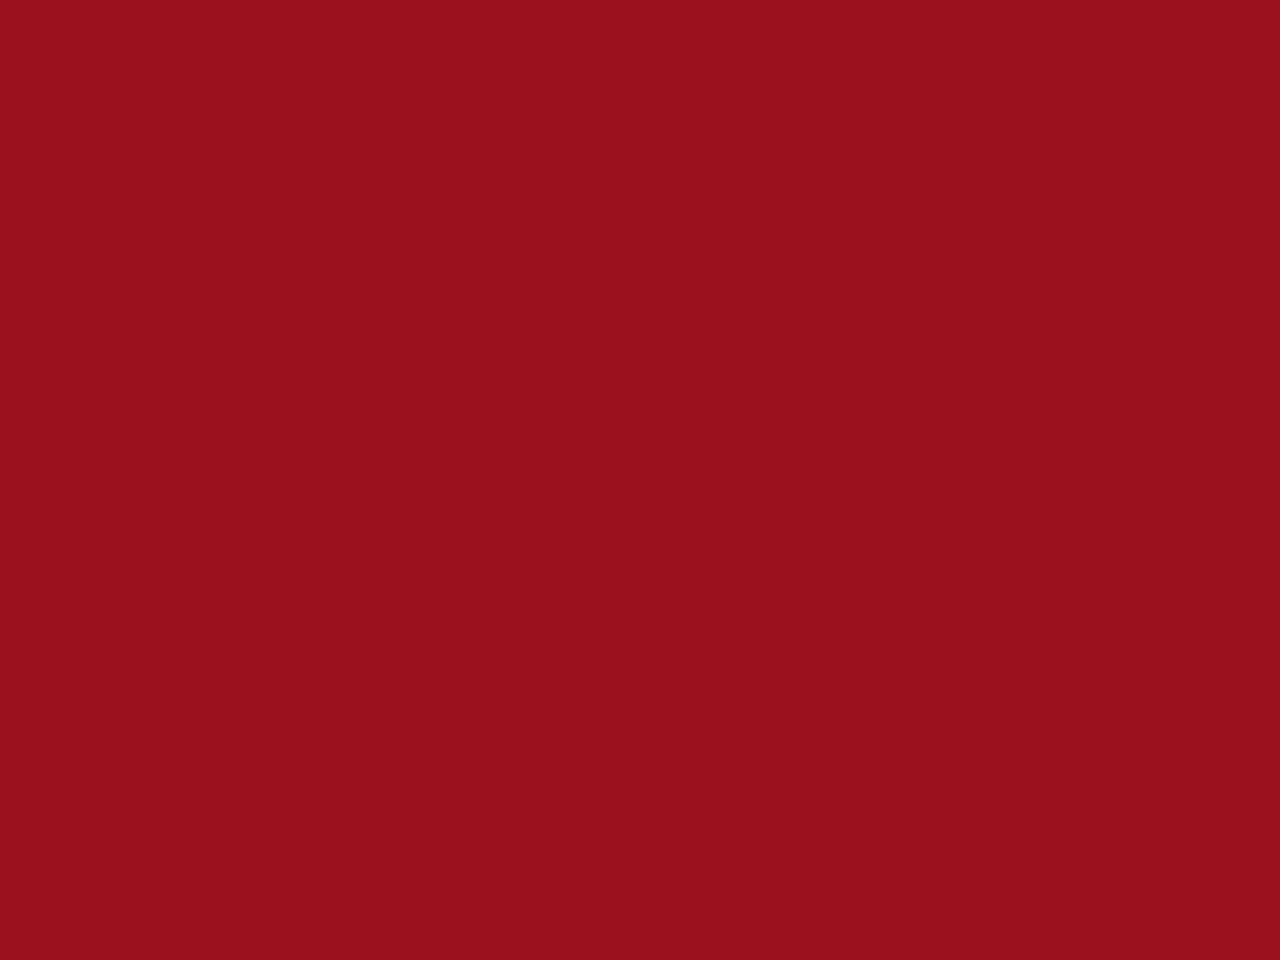 1280x960 Ruby Red Solid Color Background